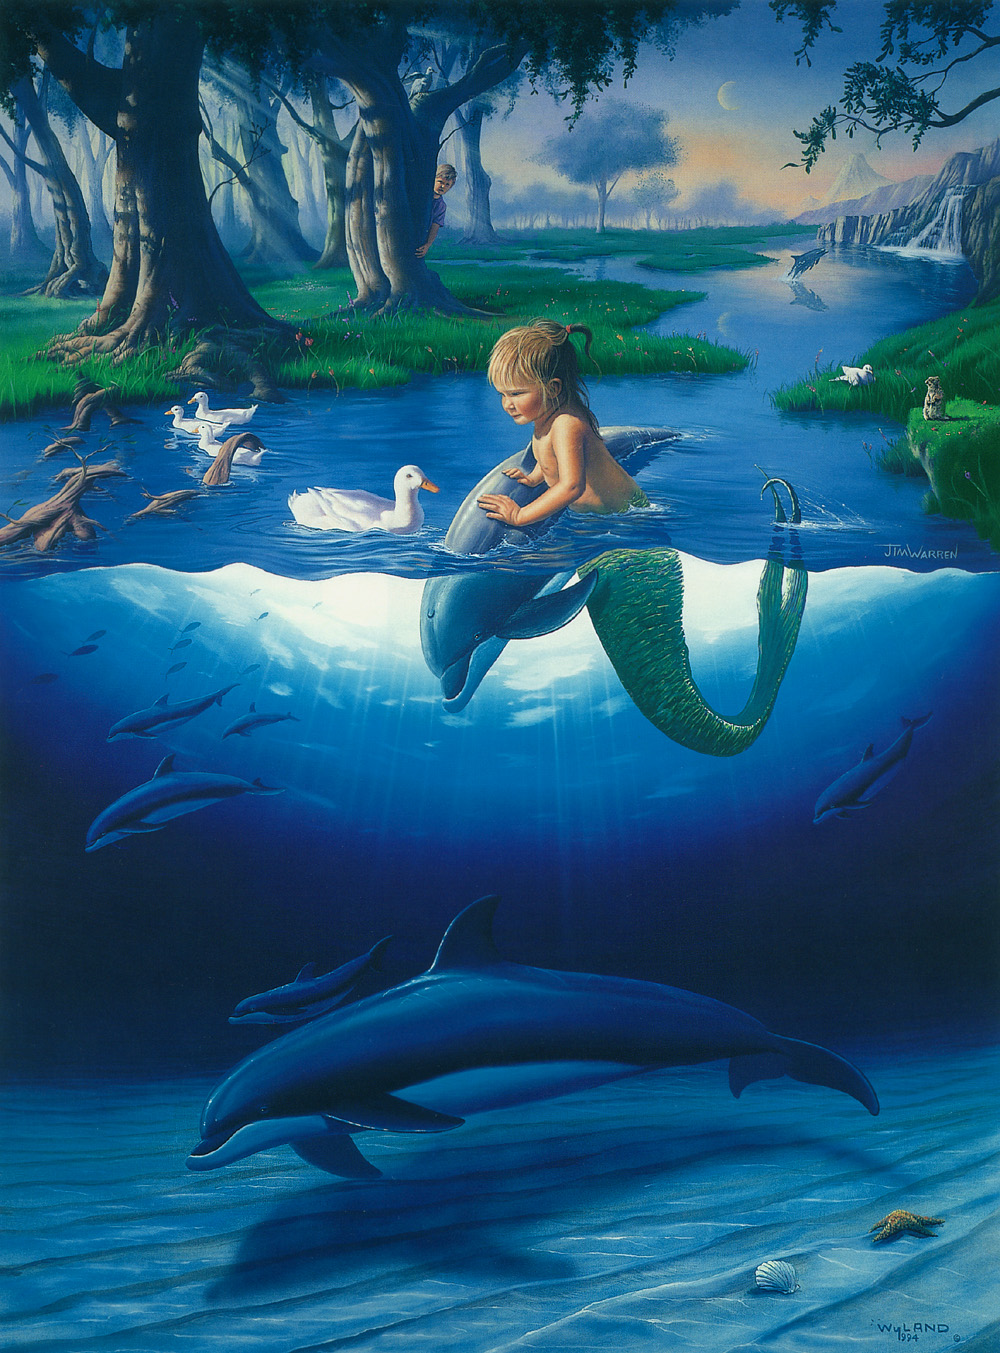 http://lcart3.narod.ru/image/fantasy/jim_warren/Jim_Warren_The_Littlest_Mermaid.jpg